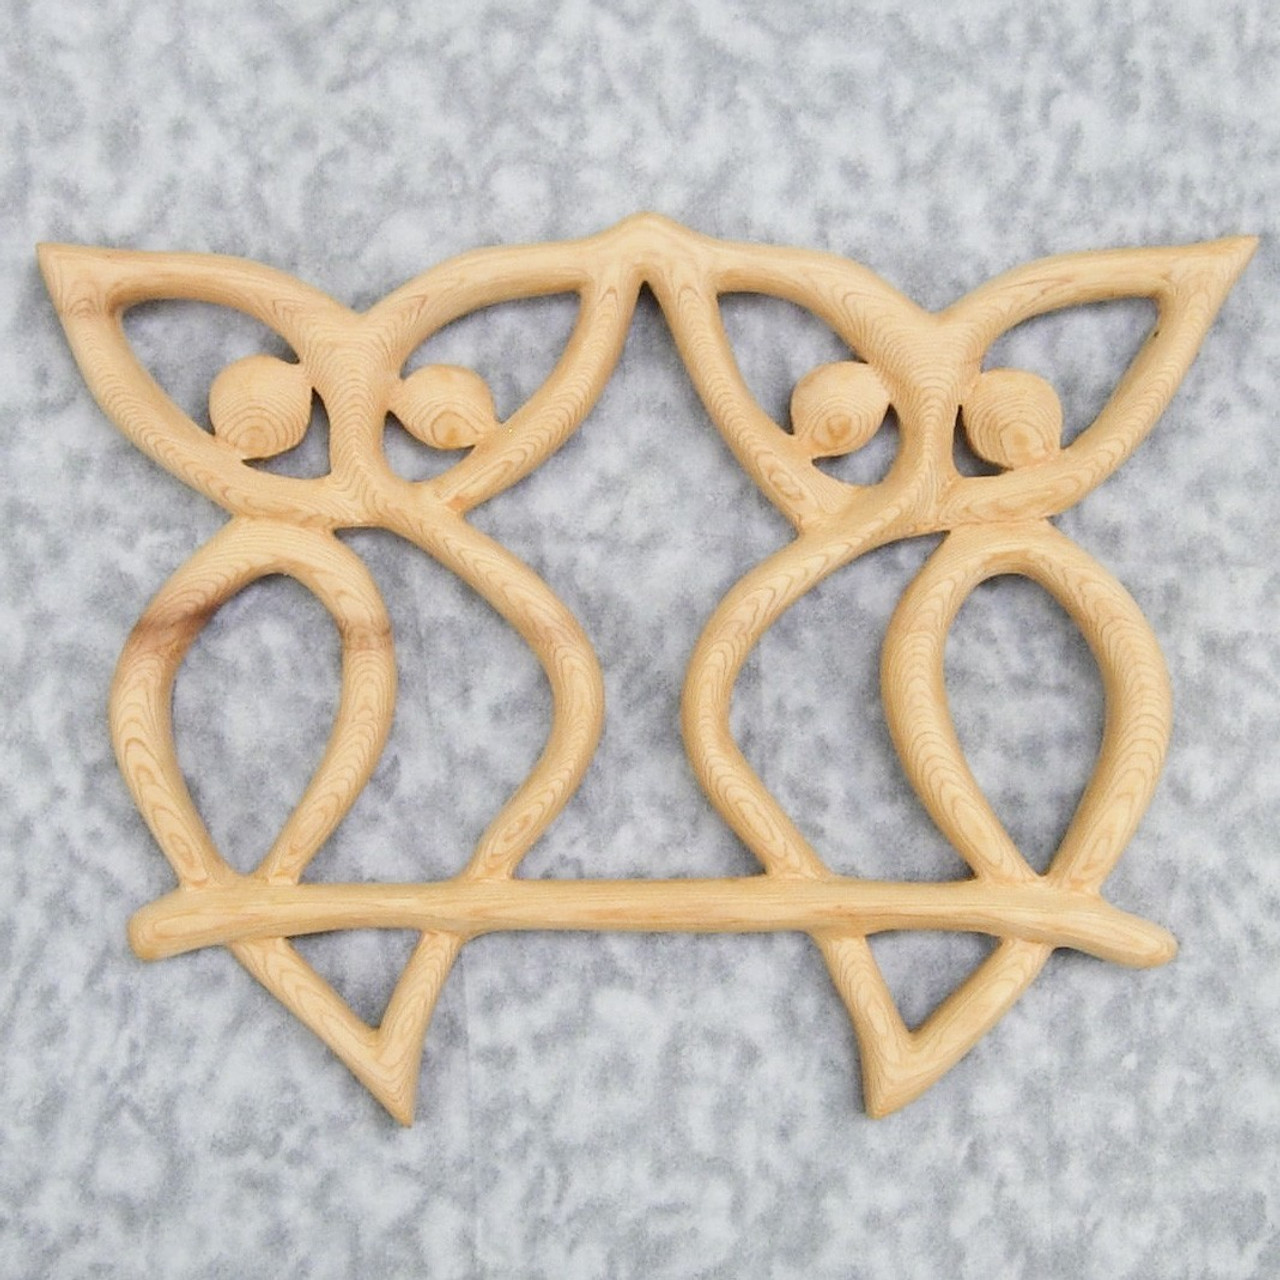 Celtic Owl Love Knot - Wood Carved Owl Couple - Wisdom and Intelligence,  Messages and Secrets, Protection